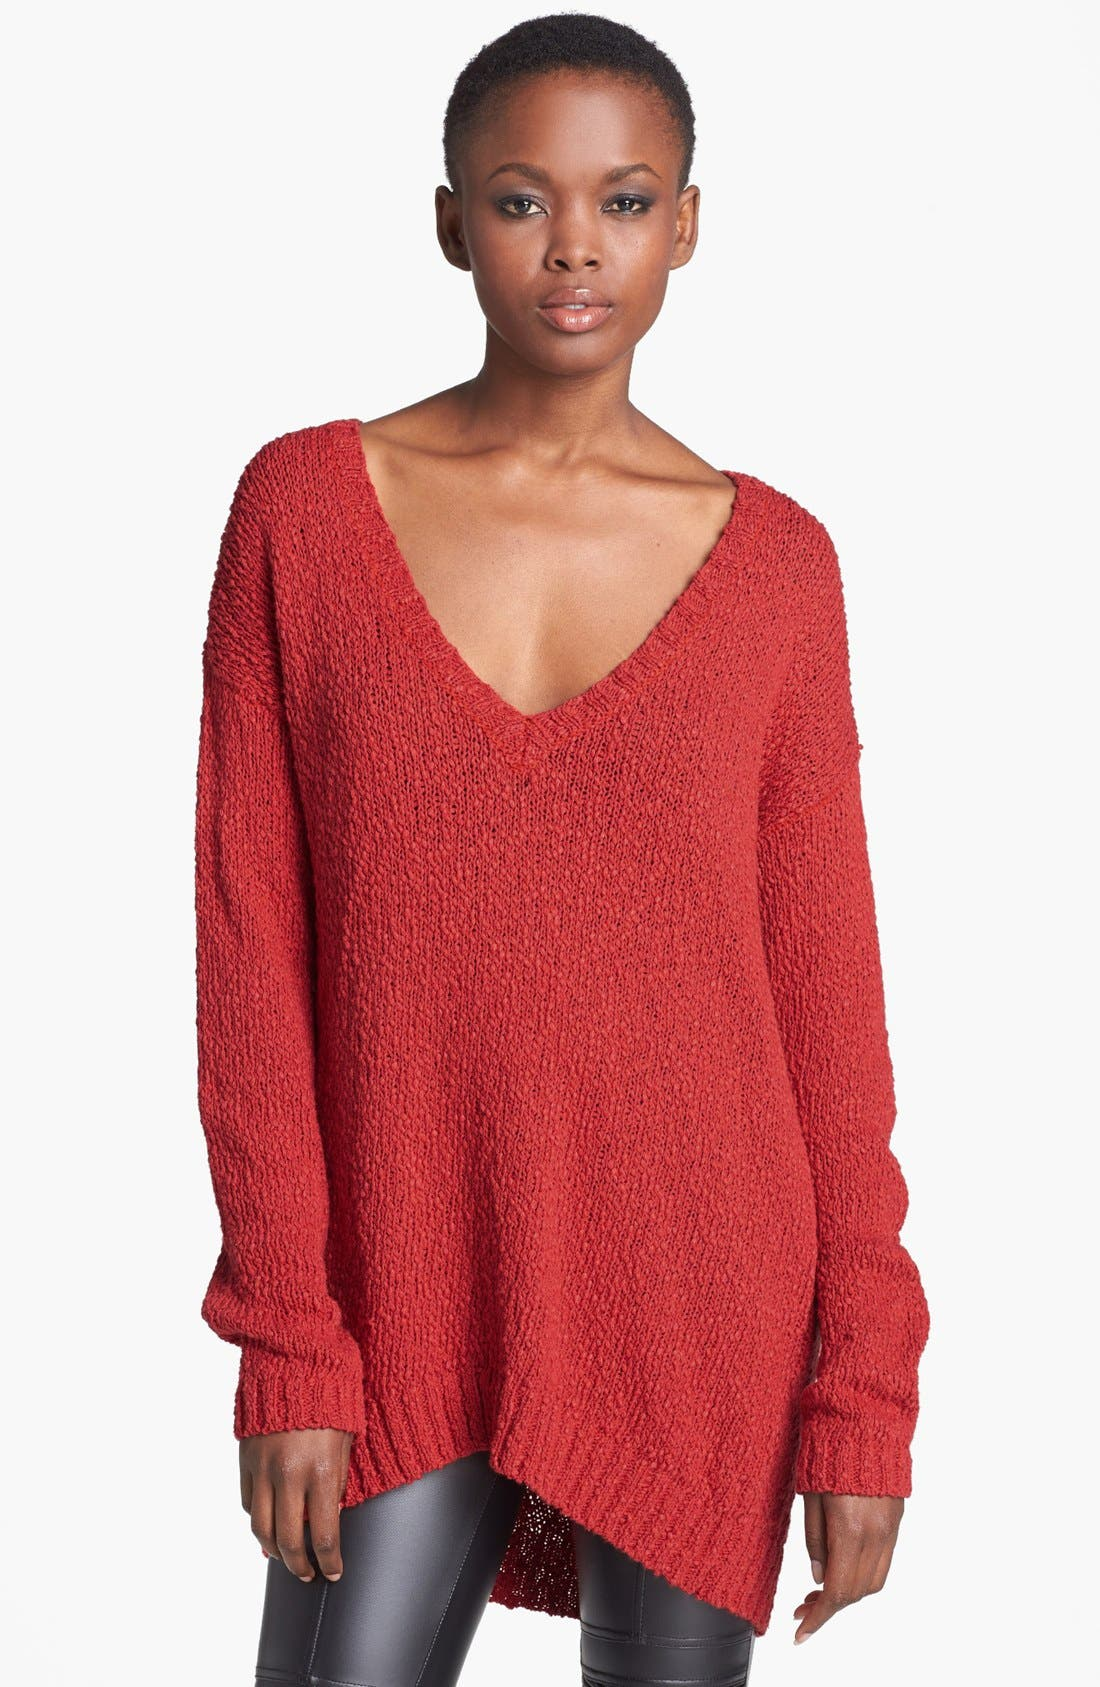 Main Image - MINKPINK 'Fader' Oversized Knit Sweater